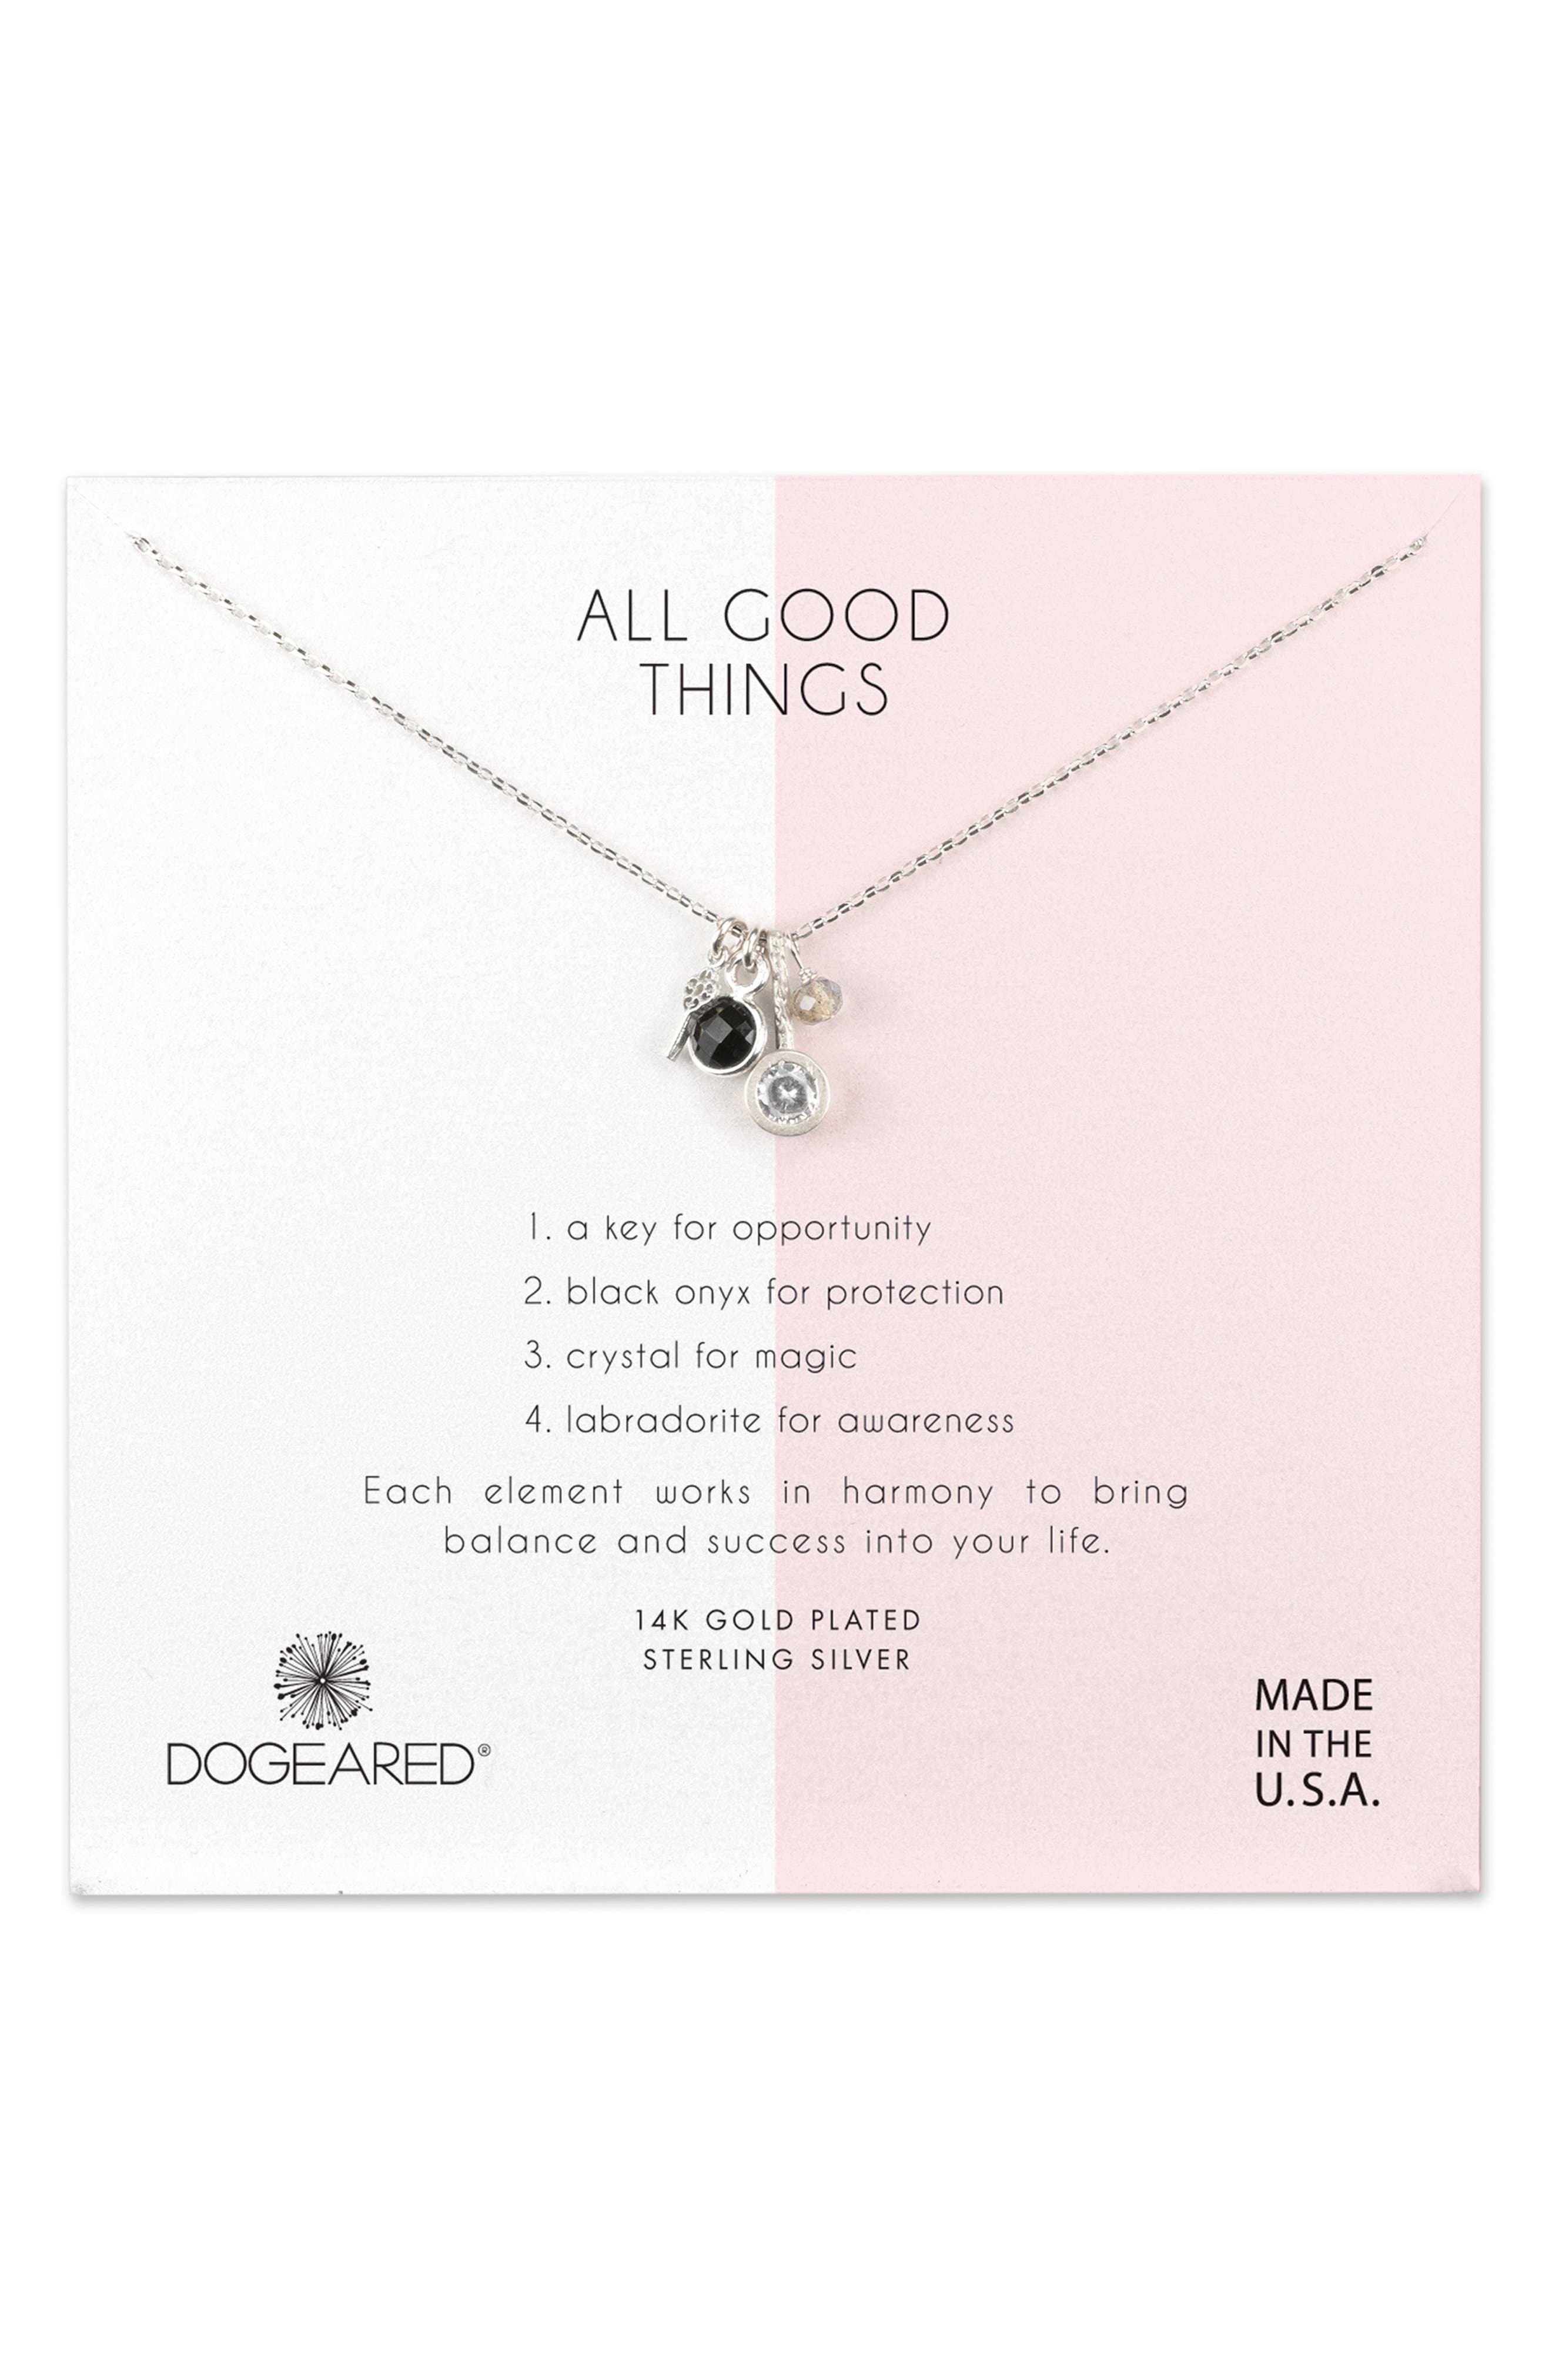 All Good Things Onyx Necklace,                             Main thumbnail 1, color,                             SILVER